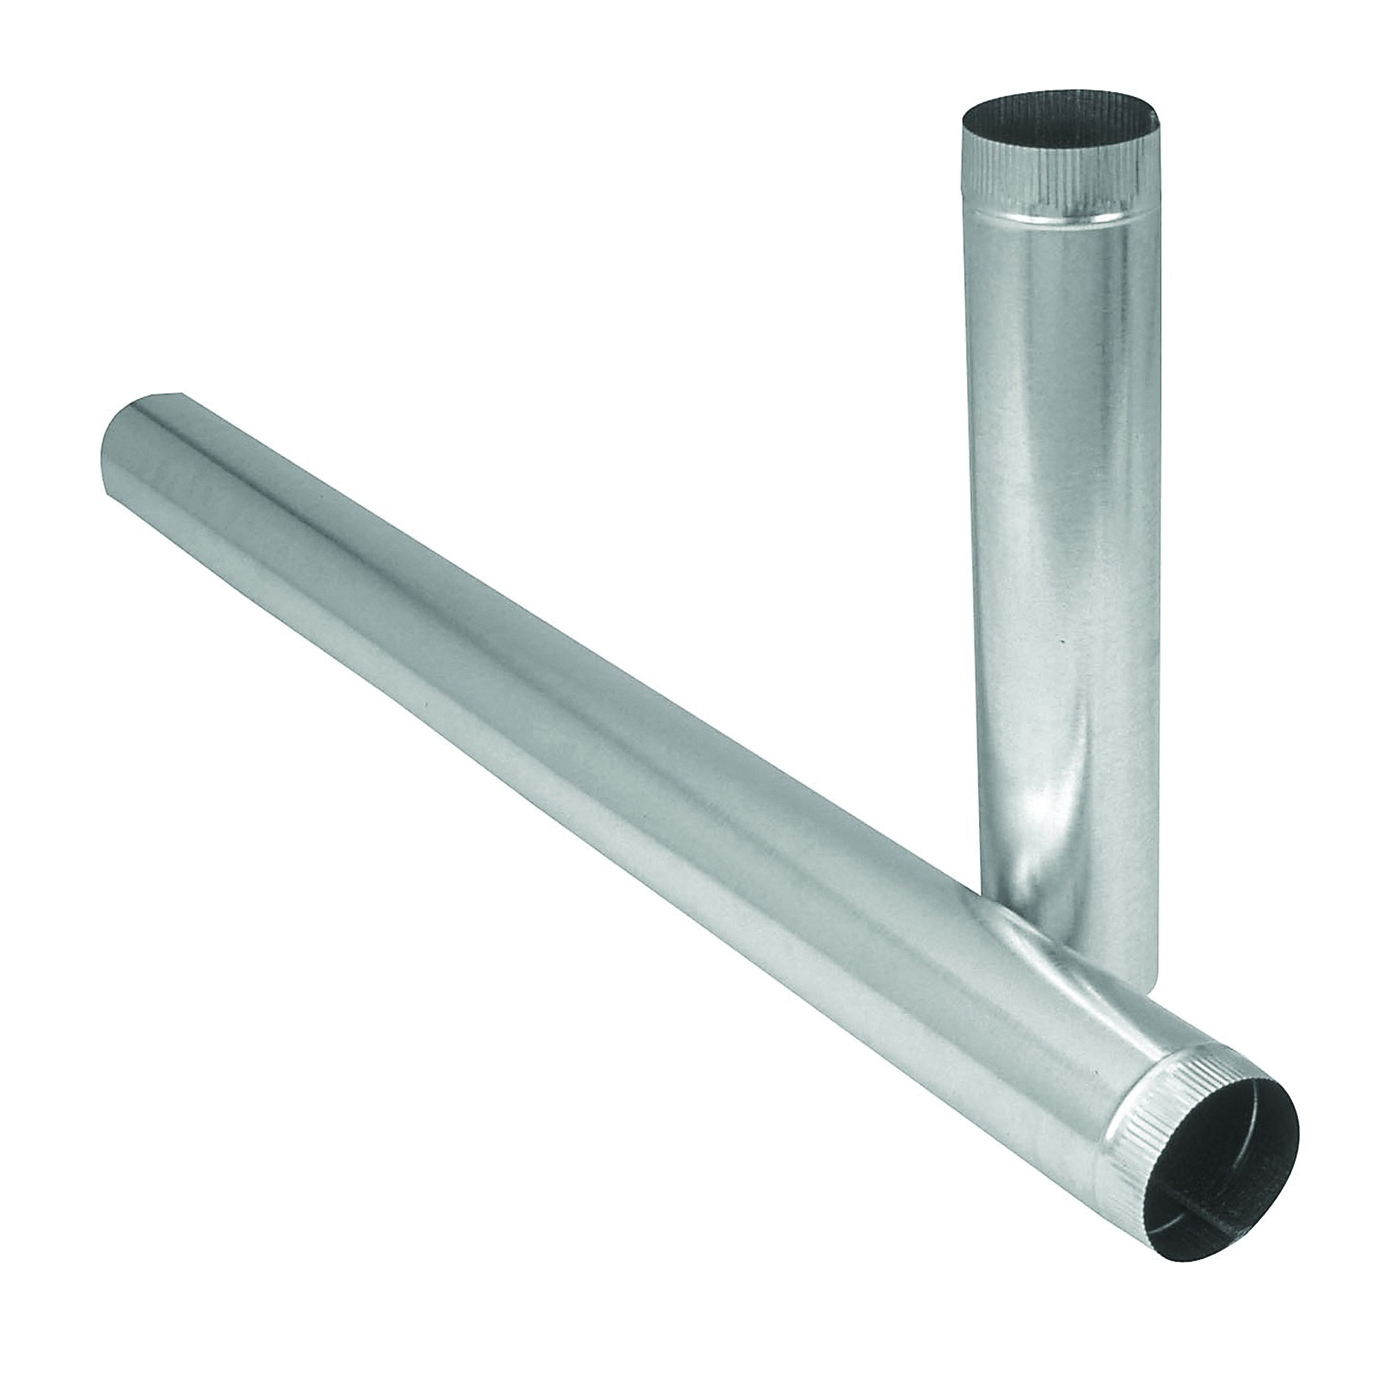 Picture of Imperial GV1753 Duct Pipe, 6 in Dia, 12 in L, 26 Gauge, Galvanized Steel, Galvanized